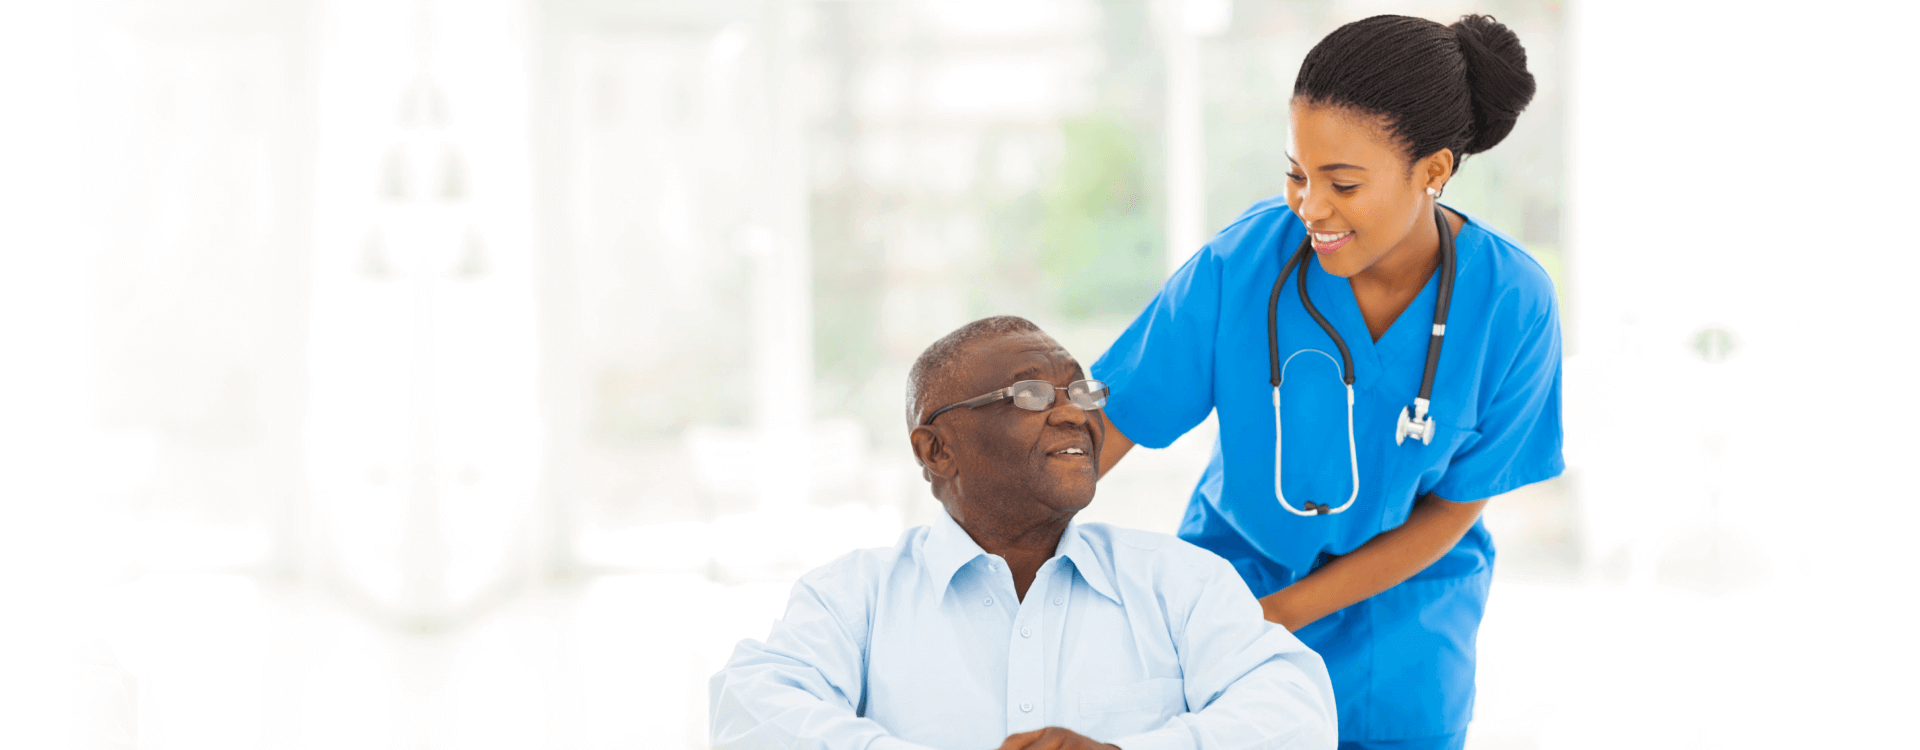 Smiling nurse and elderly man